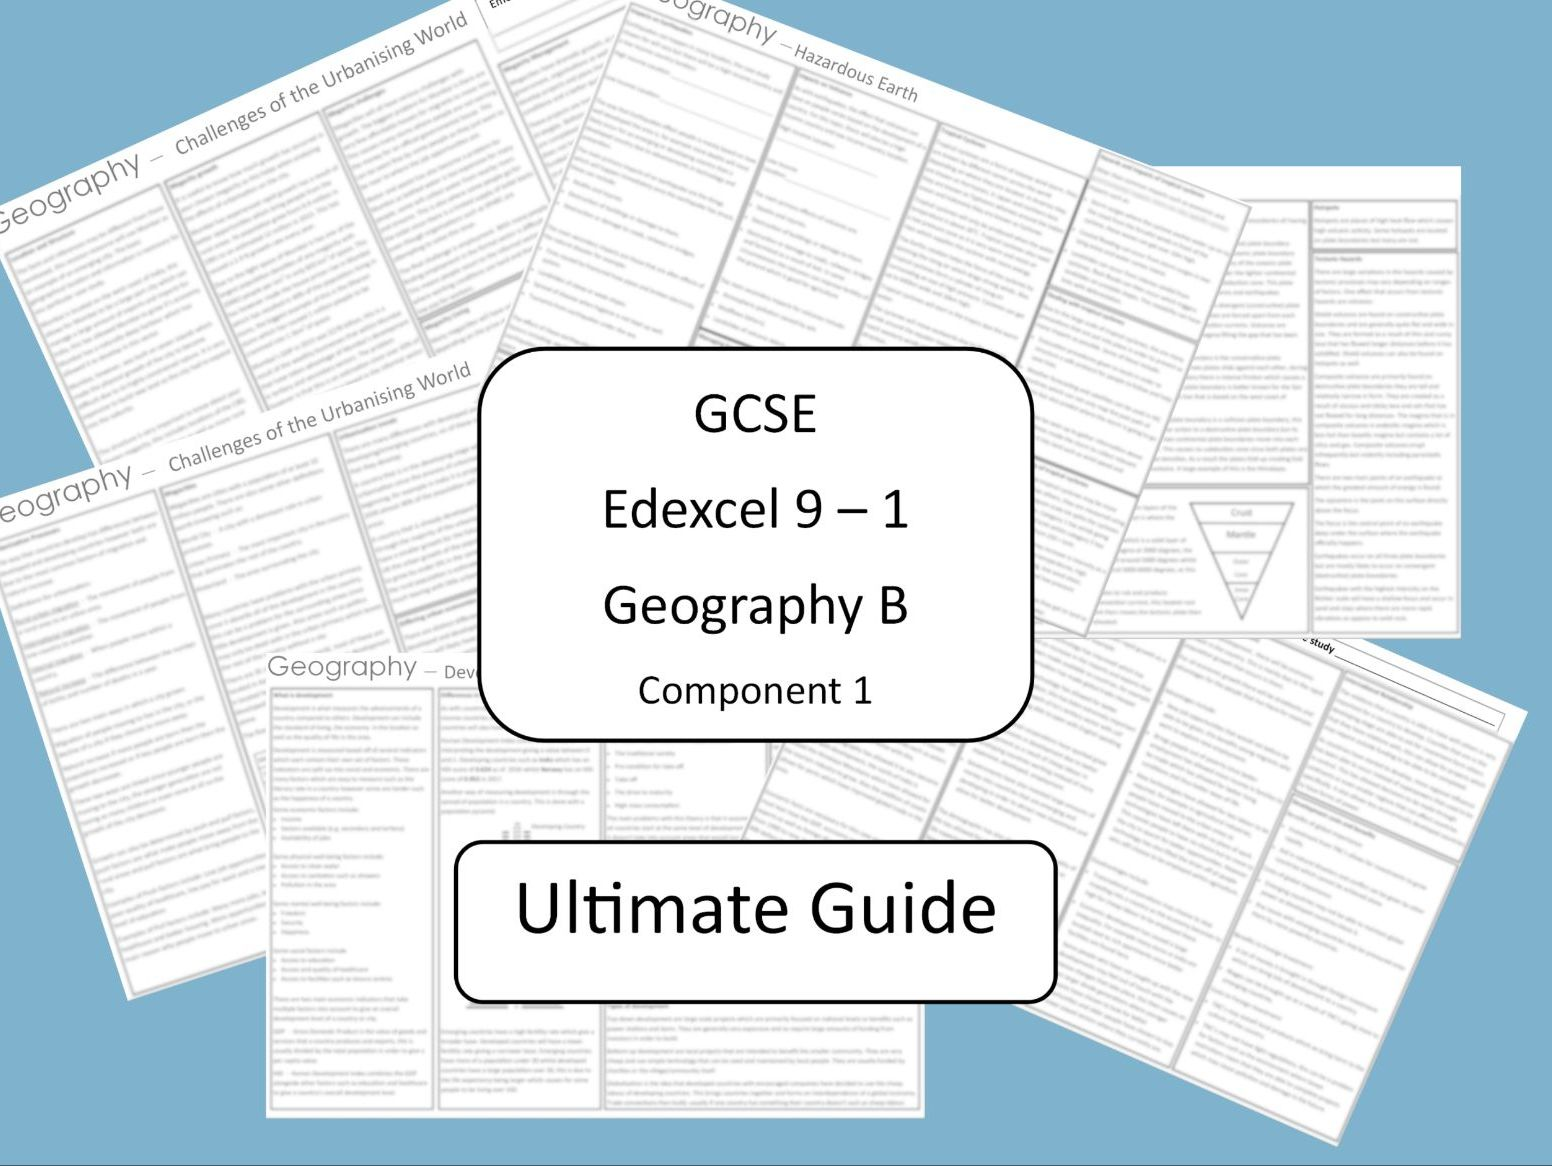 Ultimate GCSE Geography B Edexcel 9 - 1 revision guide (Component 1)